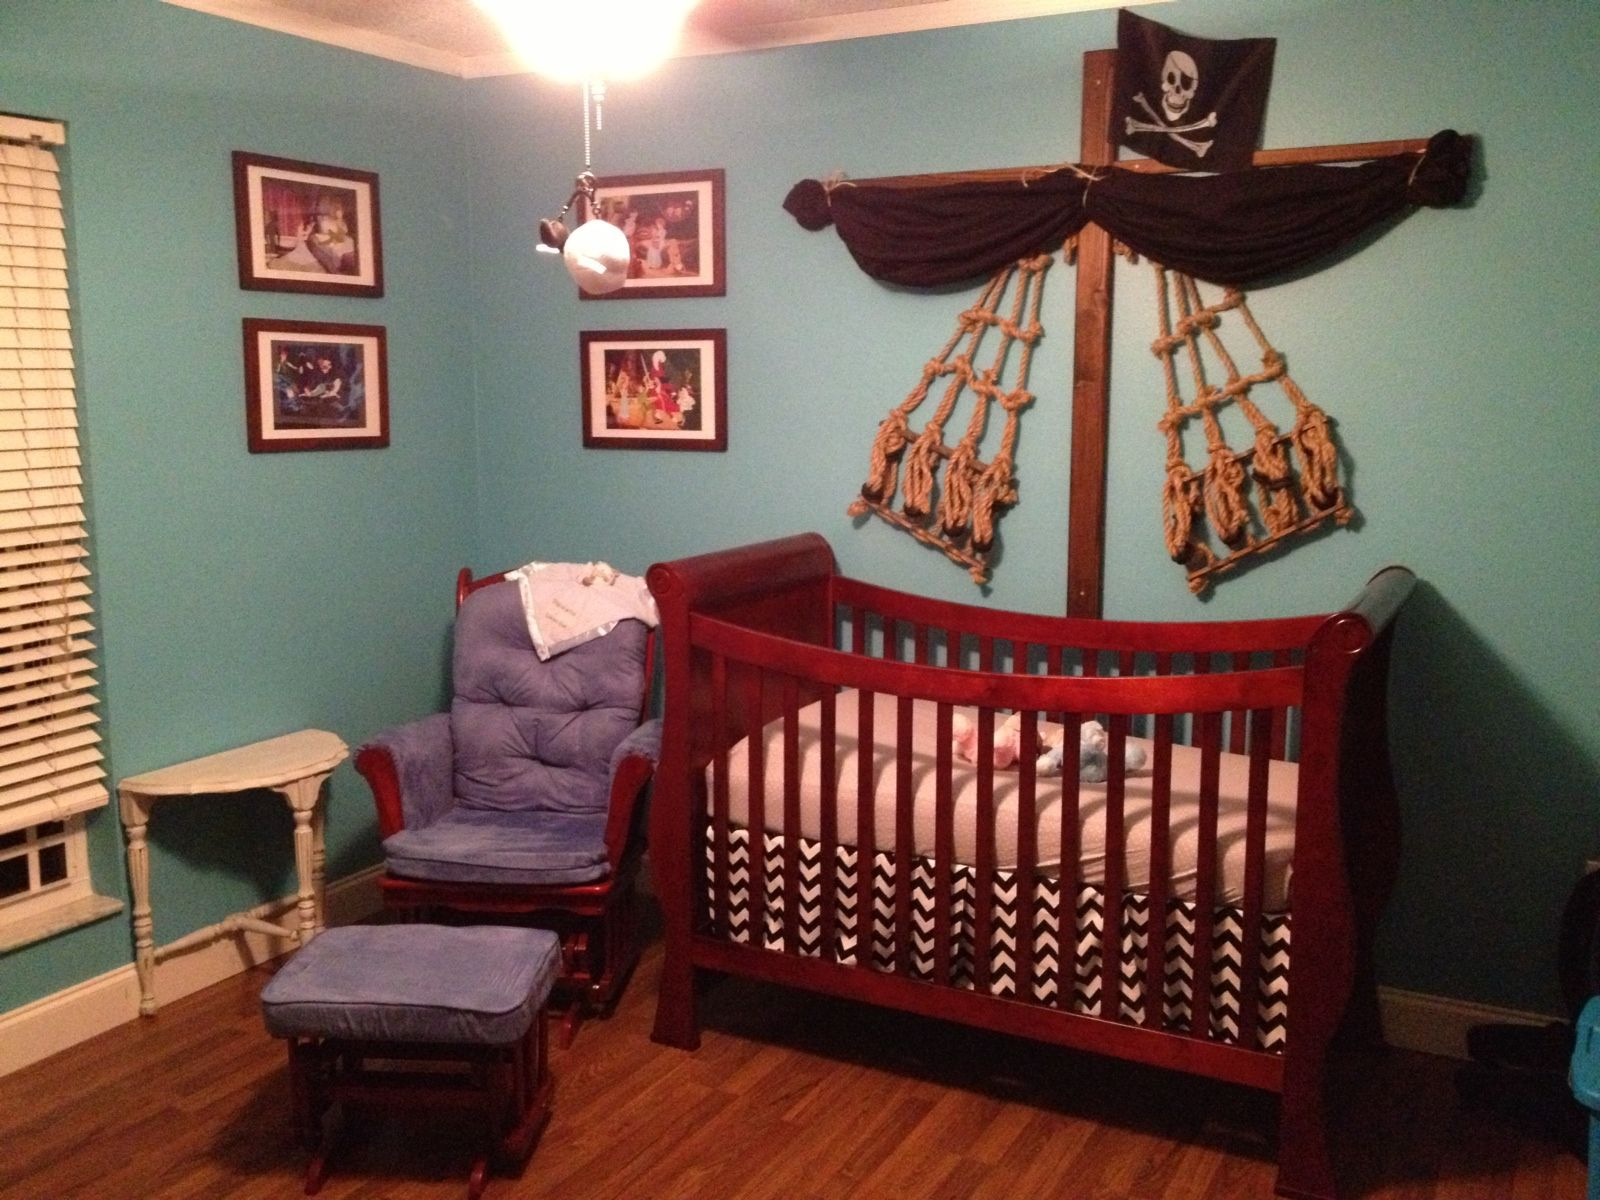 Our Very Own Pirate Ship Crib Toddler Rooms Pirate Nursery Baby Cribs